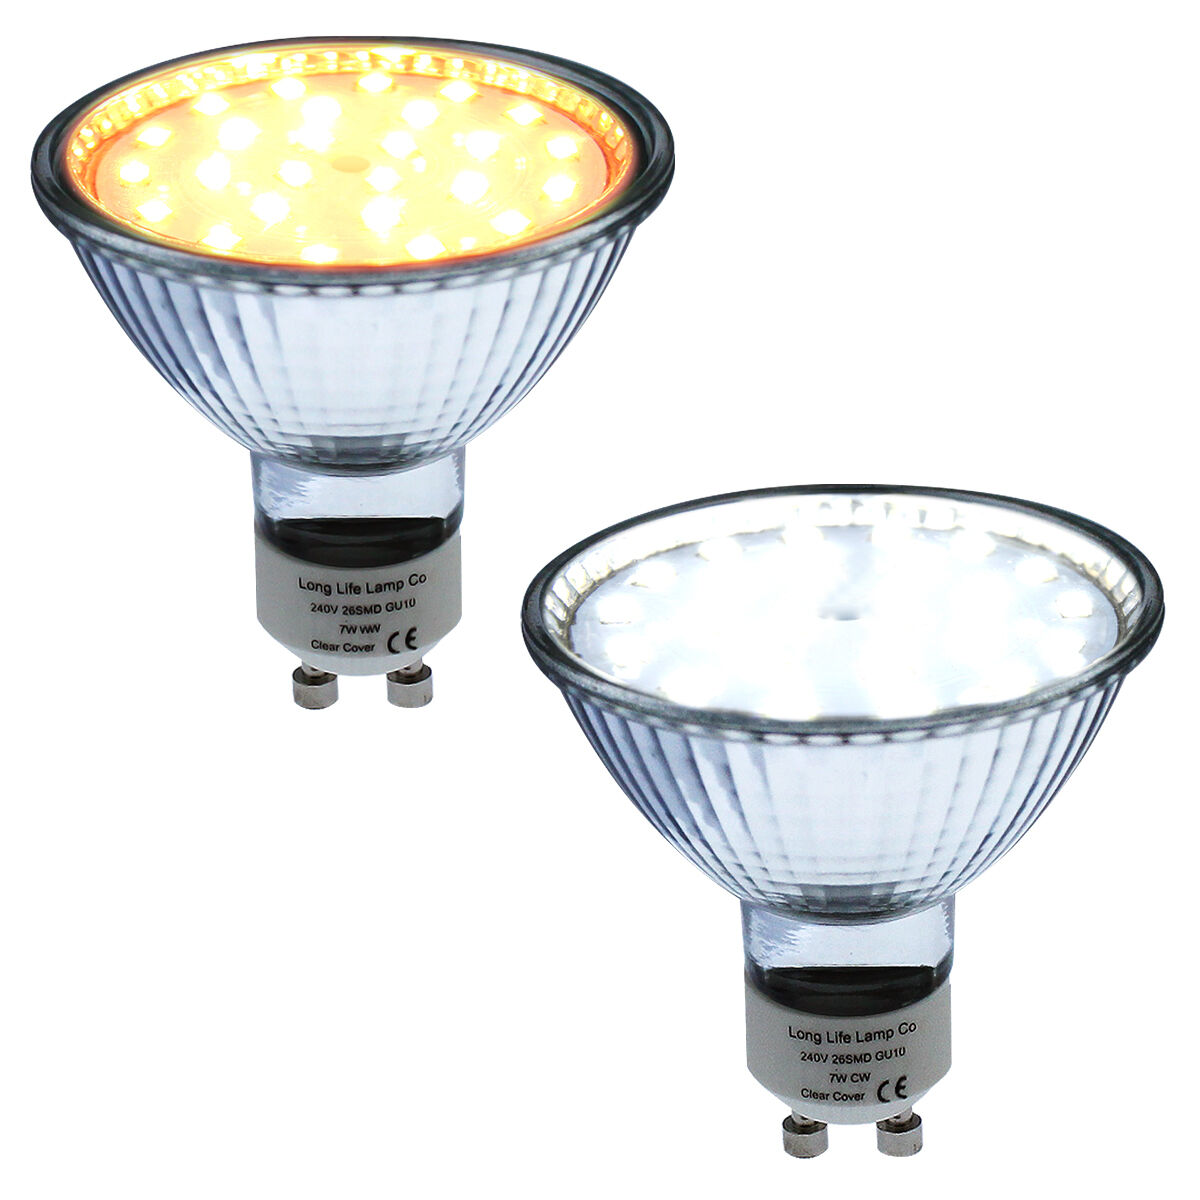 7w 63mm gu10 led replacement for 63mm halogen bulb 650 lumens warm or cool white ebay. Black Bedroom Furniture Sets. Home Design Ideas